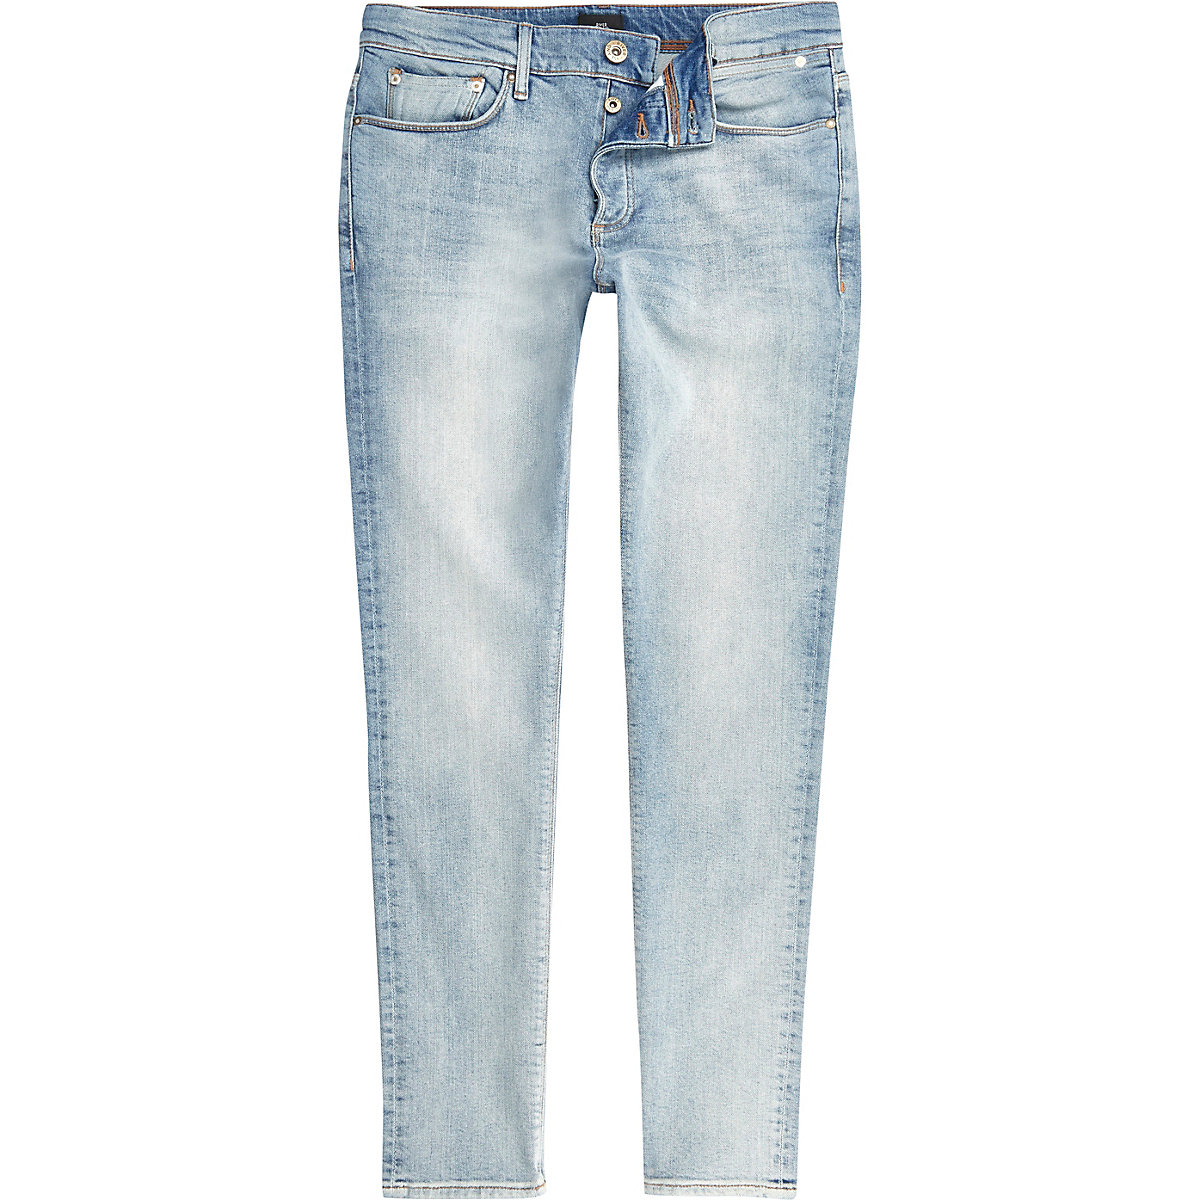 Light blue Sid skinny jeans